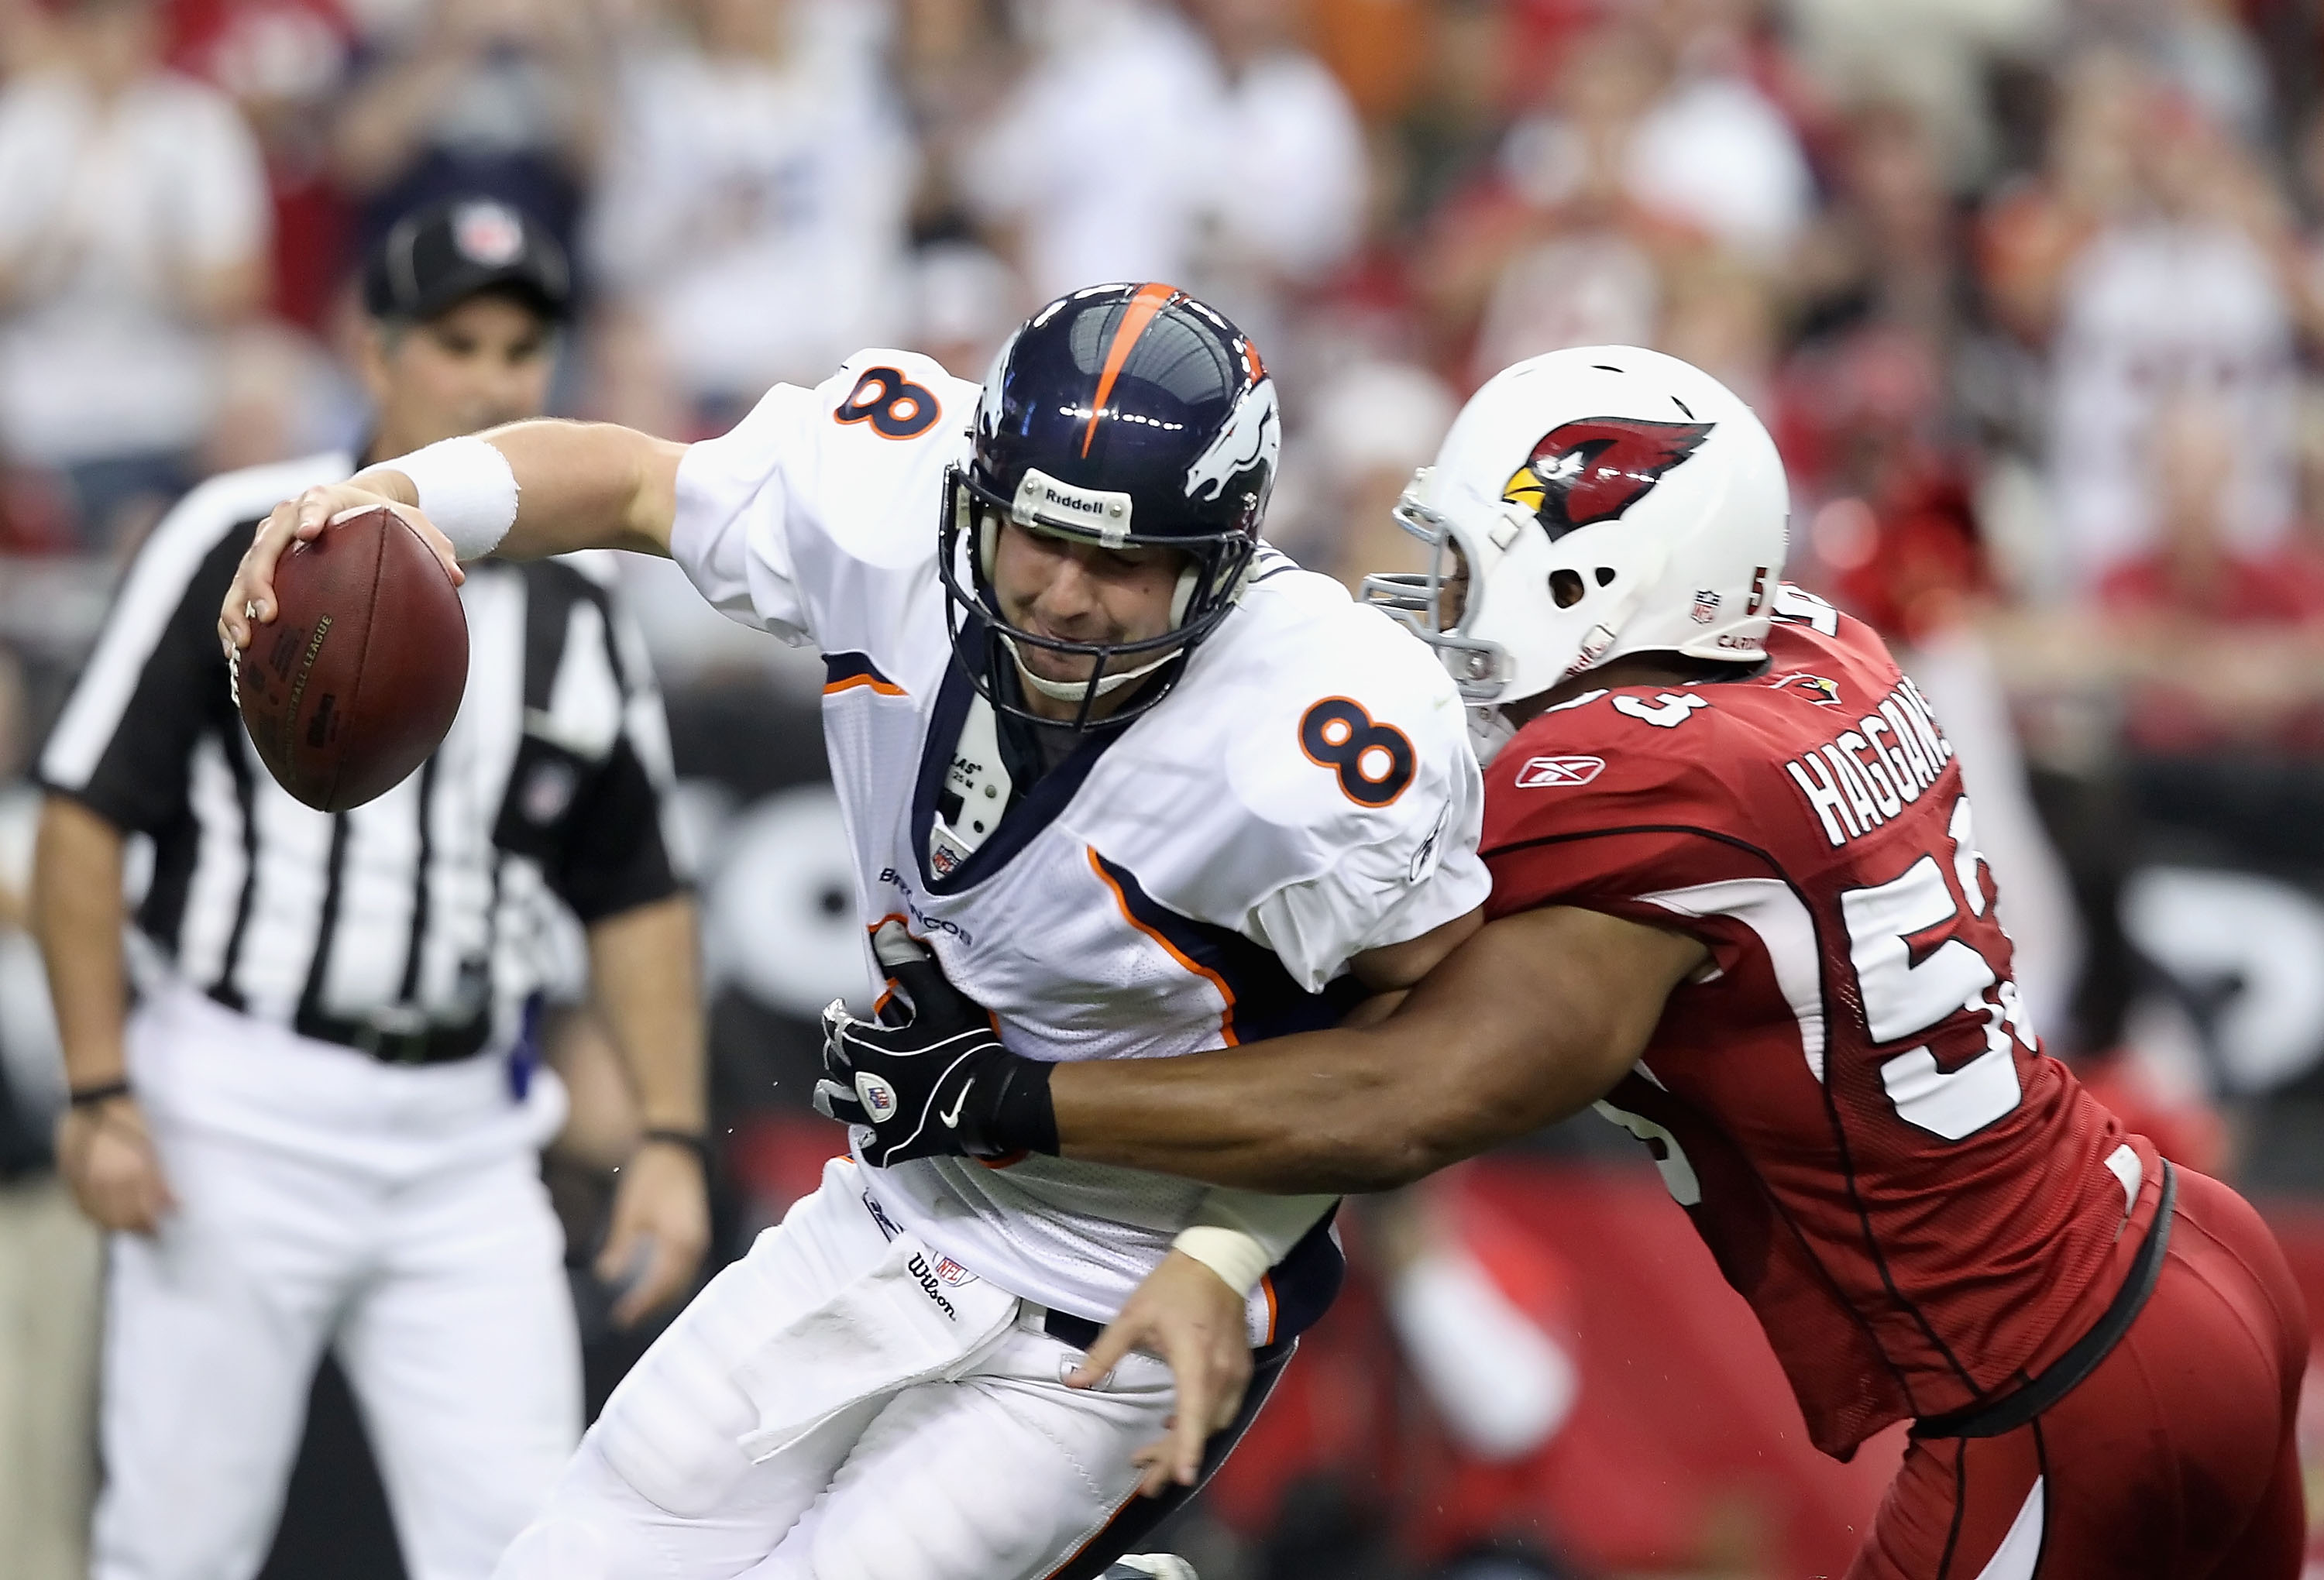 GLENDALE, AZ - DECEMBER 12:  Quarterback Kyle Orton #8 of the Denver Broncos is sacked by Clark Haggans #53 of the Arizona Cardinals during the NFL game at the University of Phoenix Stadium on December 12, 2010 in Glendale, Arizona.  The Cardinals defeate